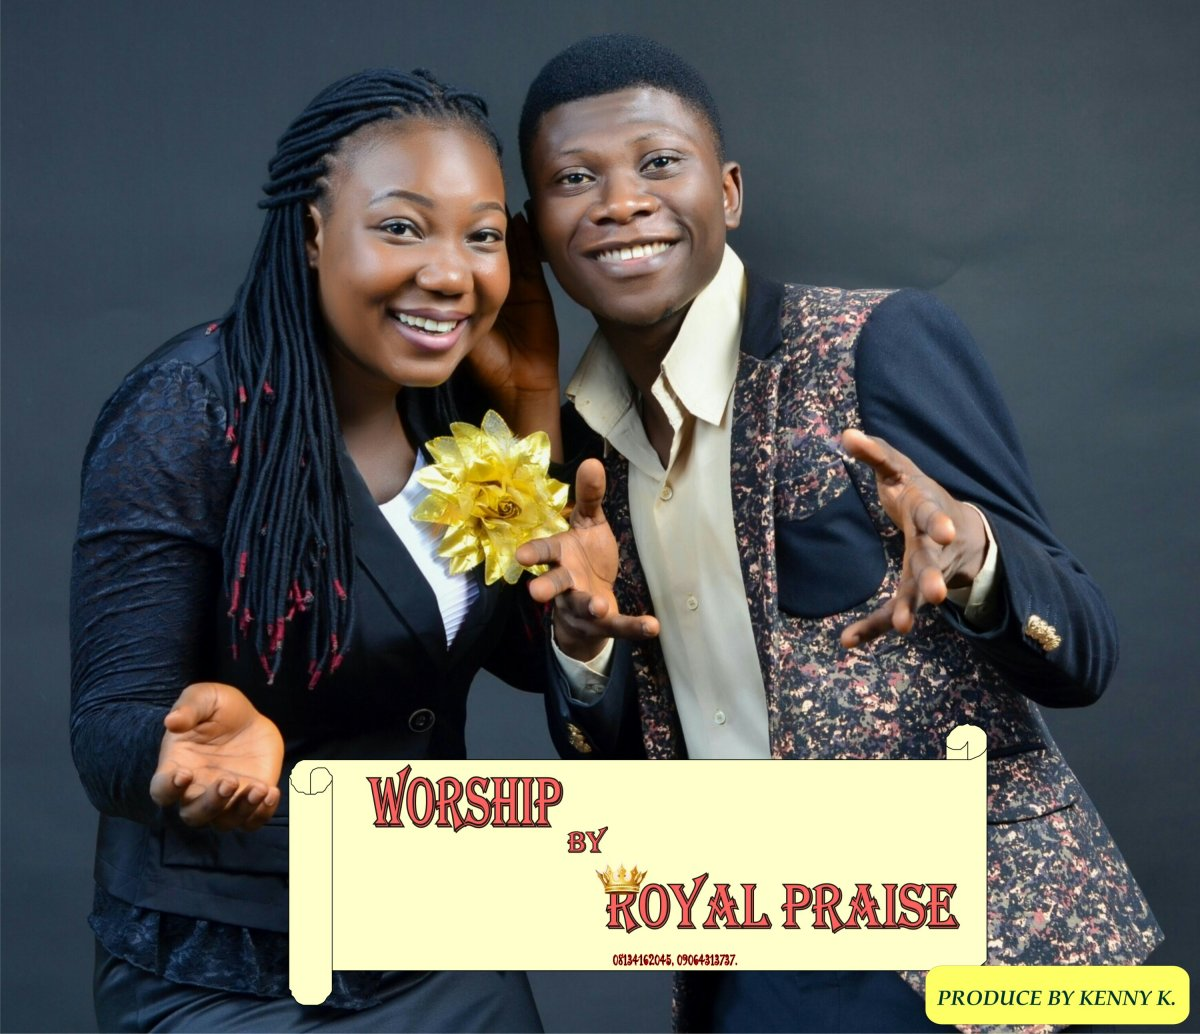 GOSPEL MUSIC: Royal Praise - Move In Me (Prod. By Kenny K)